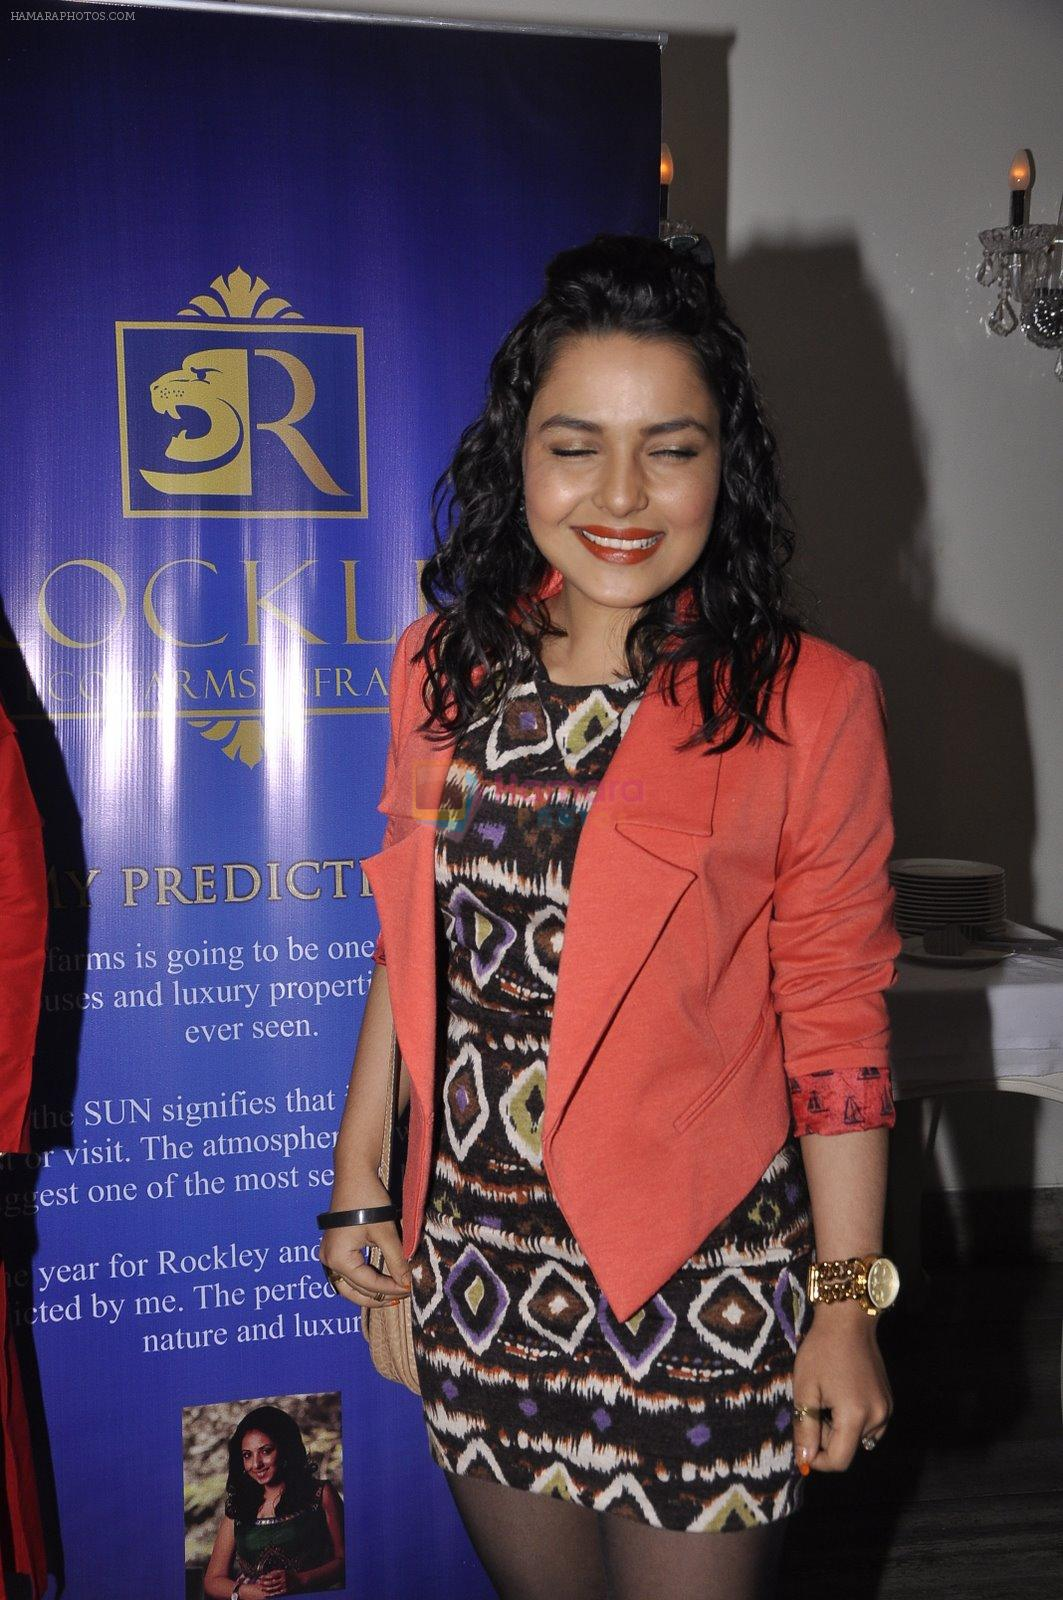 Chitrashi Rawat at the launch of Munisha Khatwani's Tarot predictions 2015 book in Villa 69, Mumbai on 17th Dec 2014